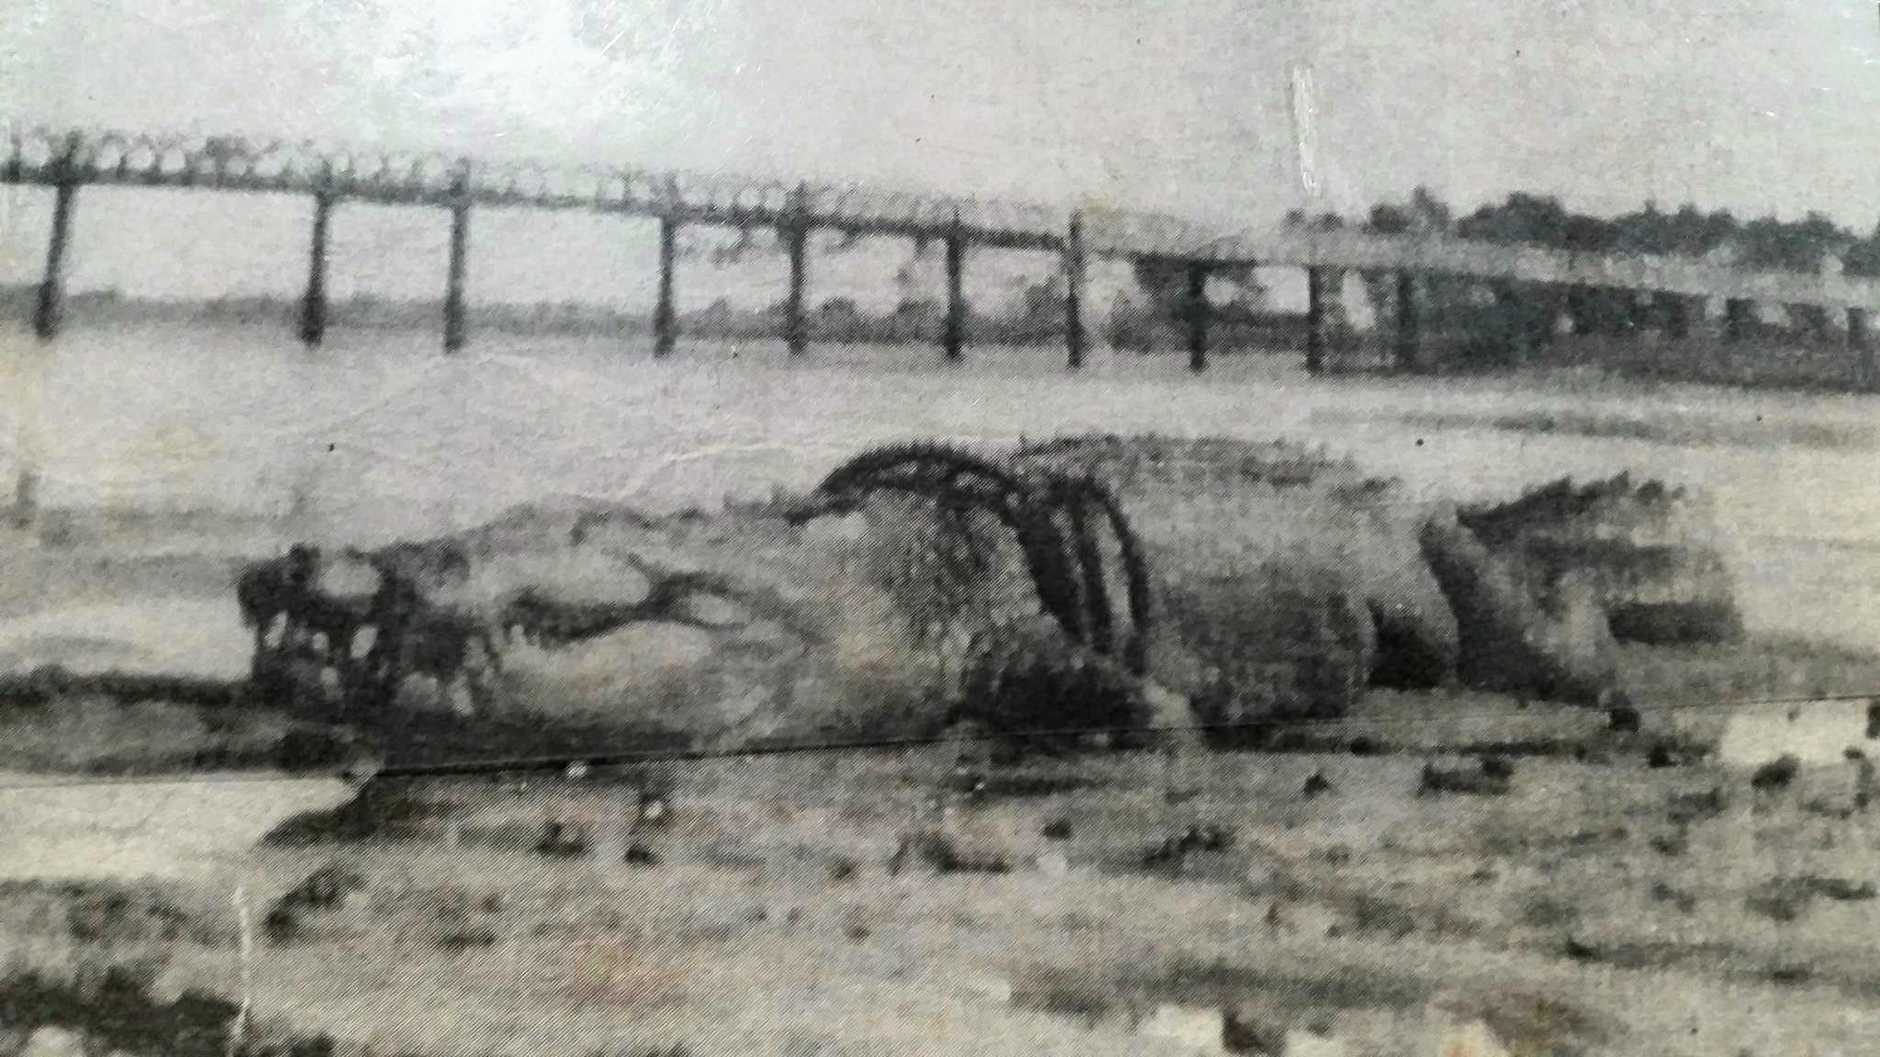 Does this historic photograph show the monster 9.7m (32foot) crocodile reportedly shot from the Leichhardt Hotel in River St, Mackay on an unknown date? The jury's still out.